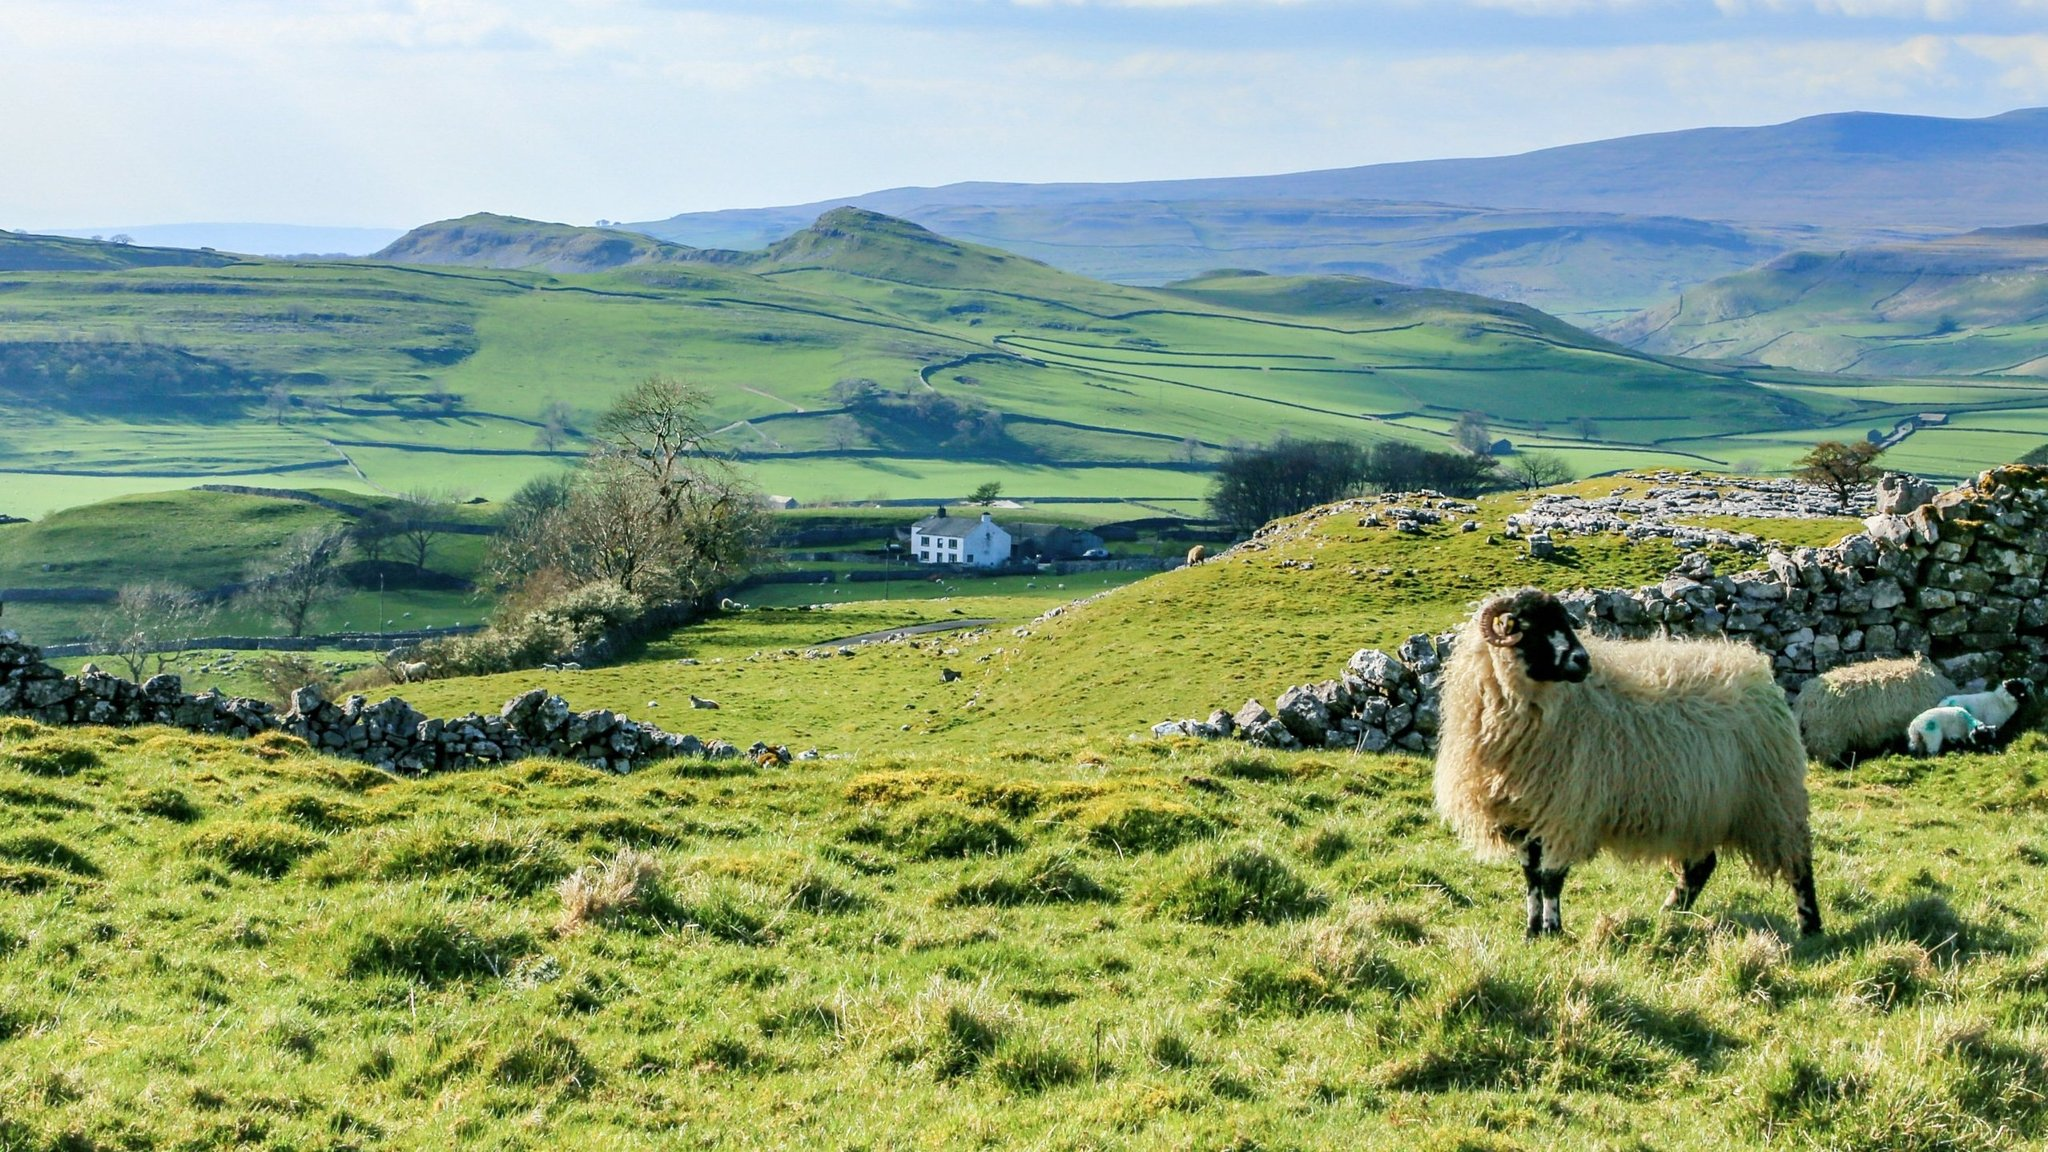 Warnings over proposed 500% council tax rise in Yorkshire Dales   Financial  Times